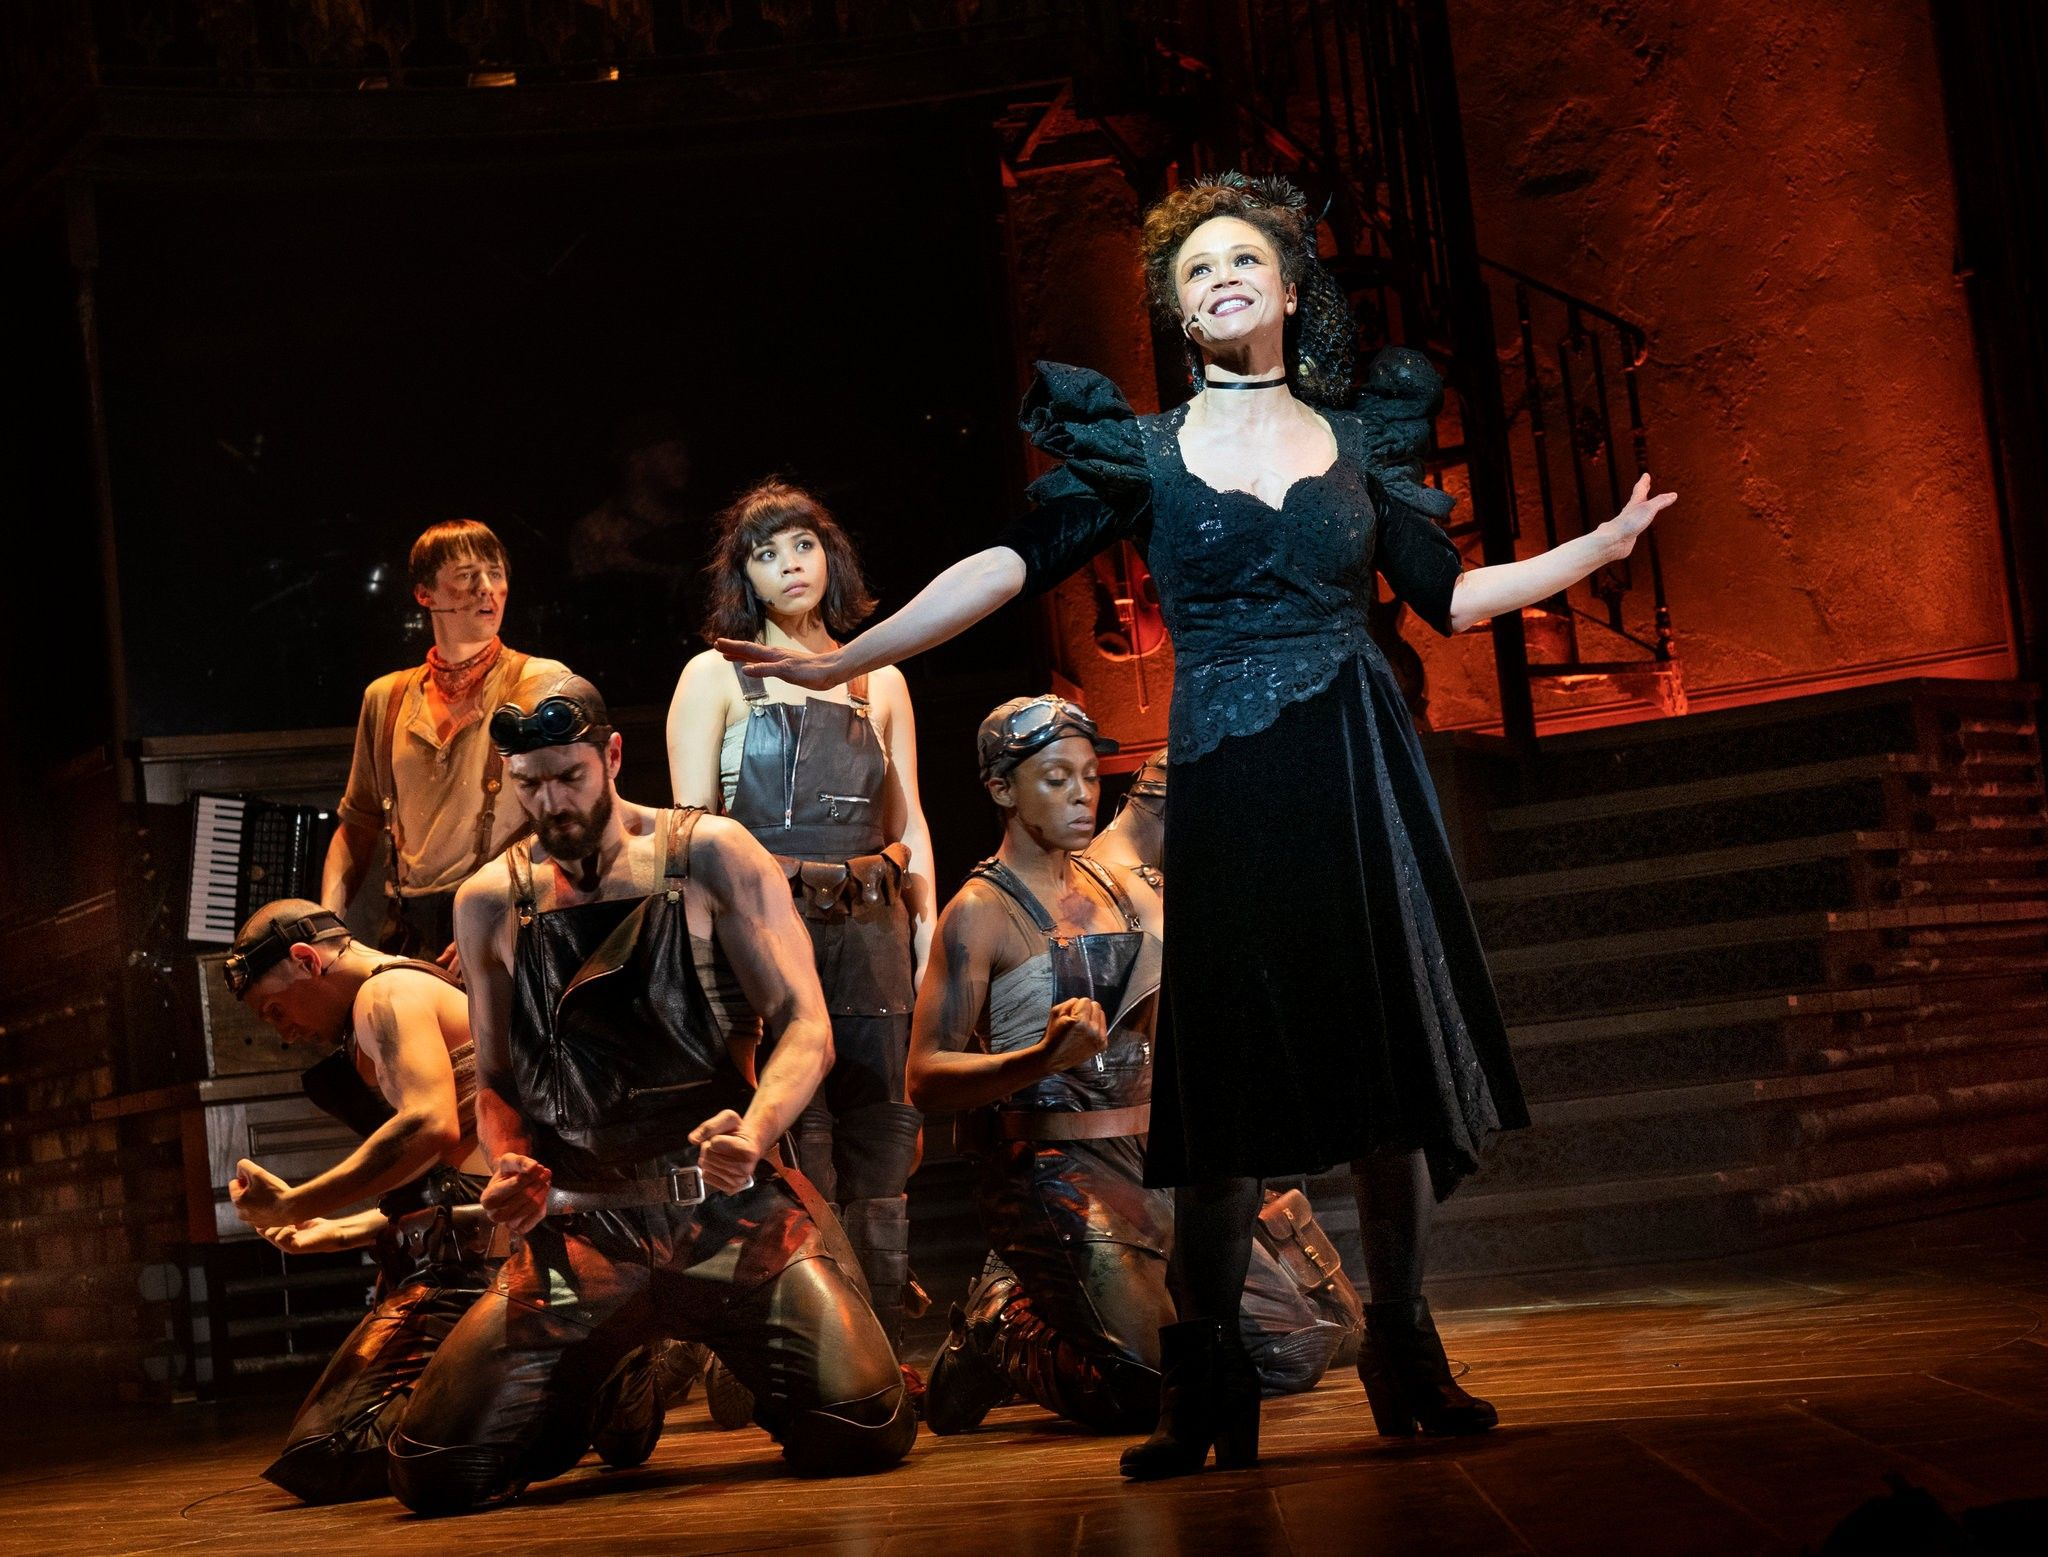 Standing from left: Reeve Carney as Orpheus, Eva Noblezada